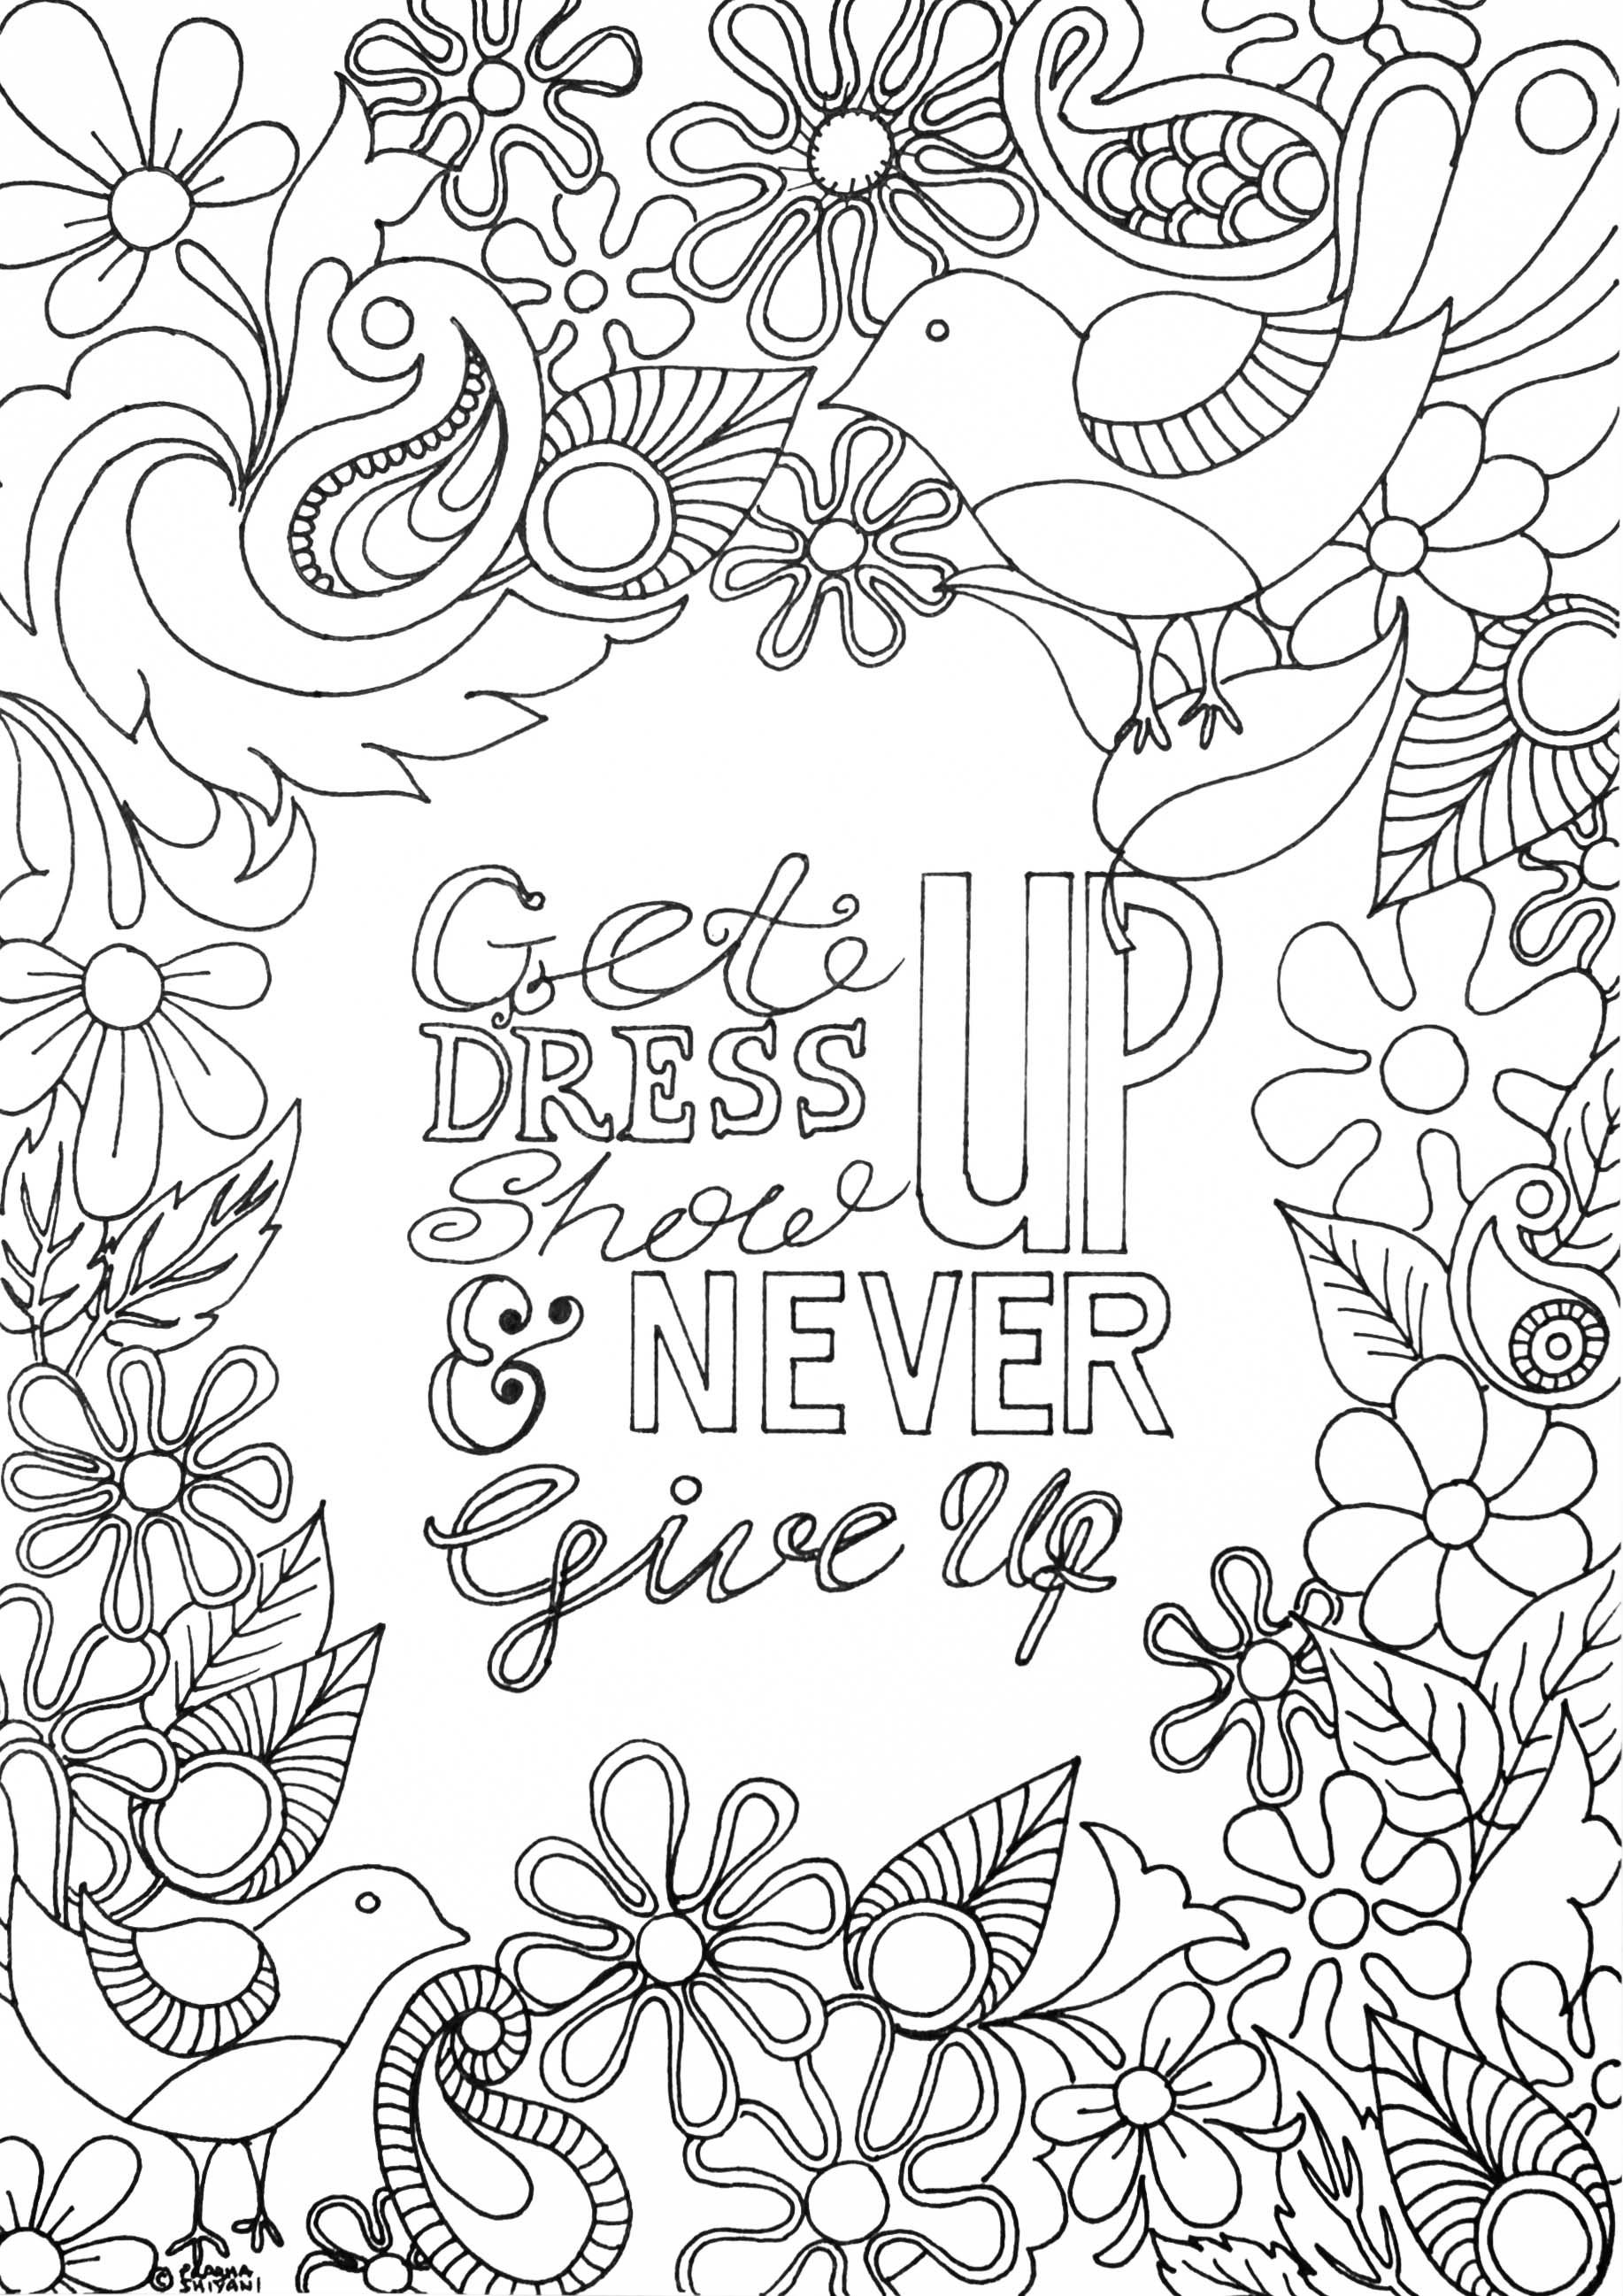 Positive Mental Health Colouring Pages Inspirational